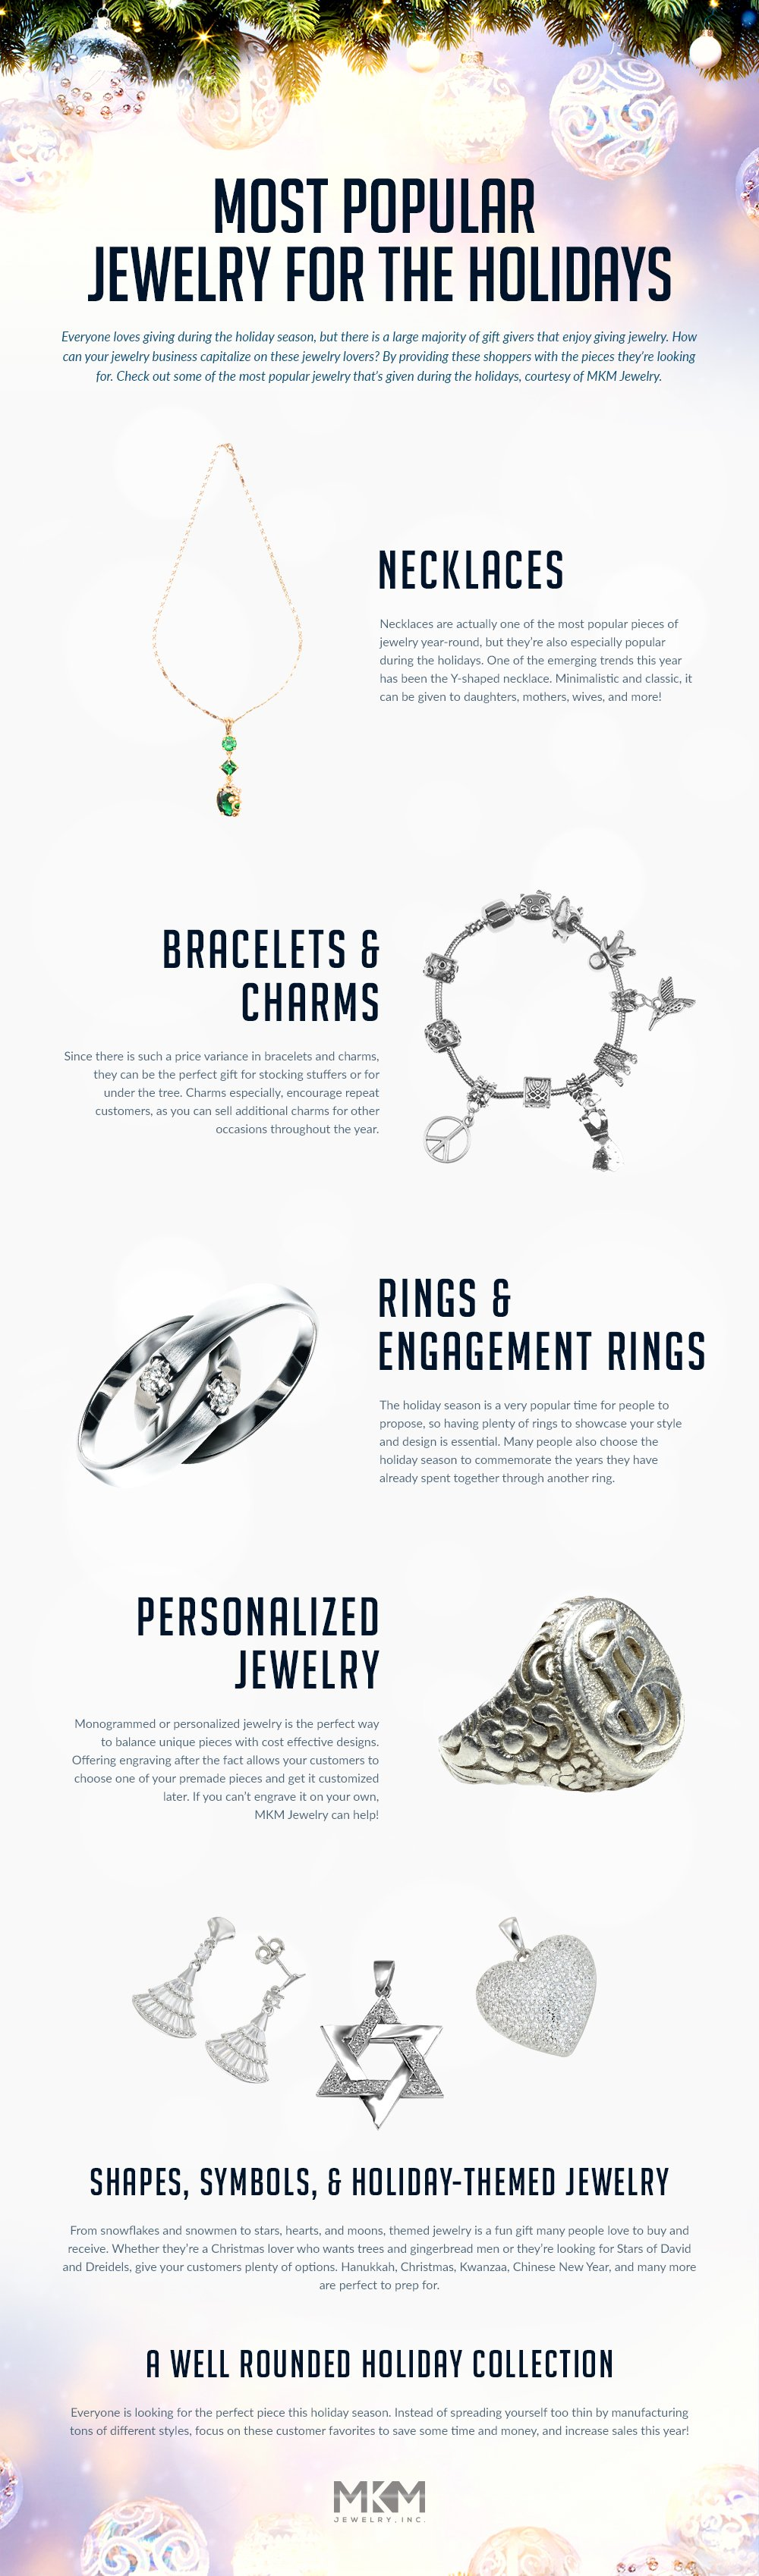 Most Popular Jewelry for the Holidays